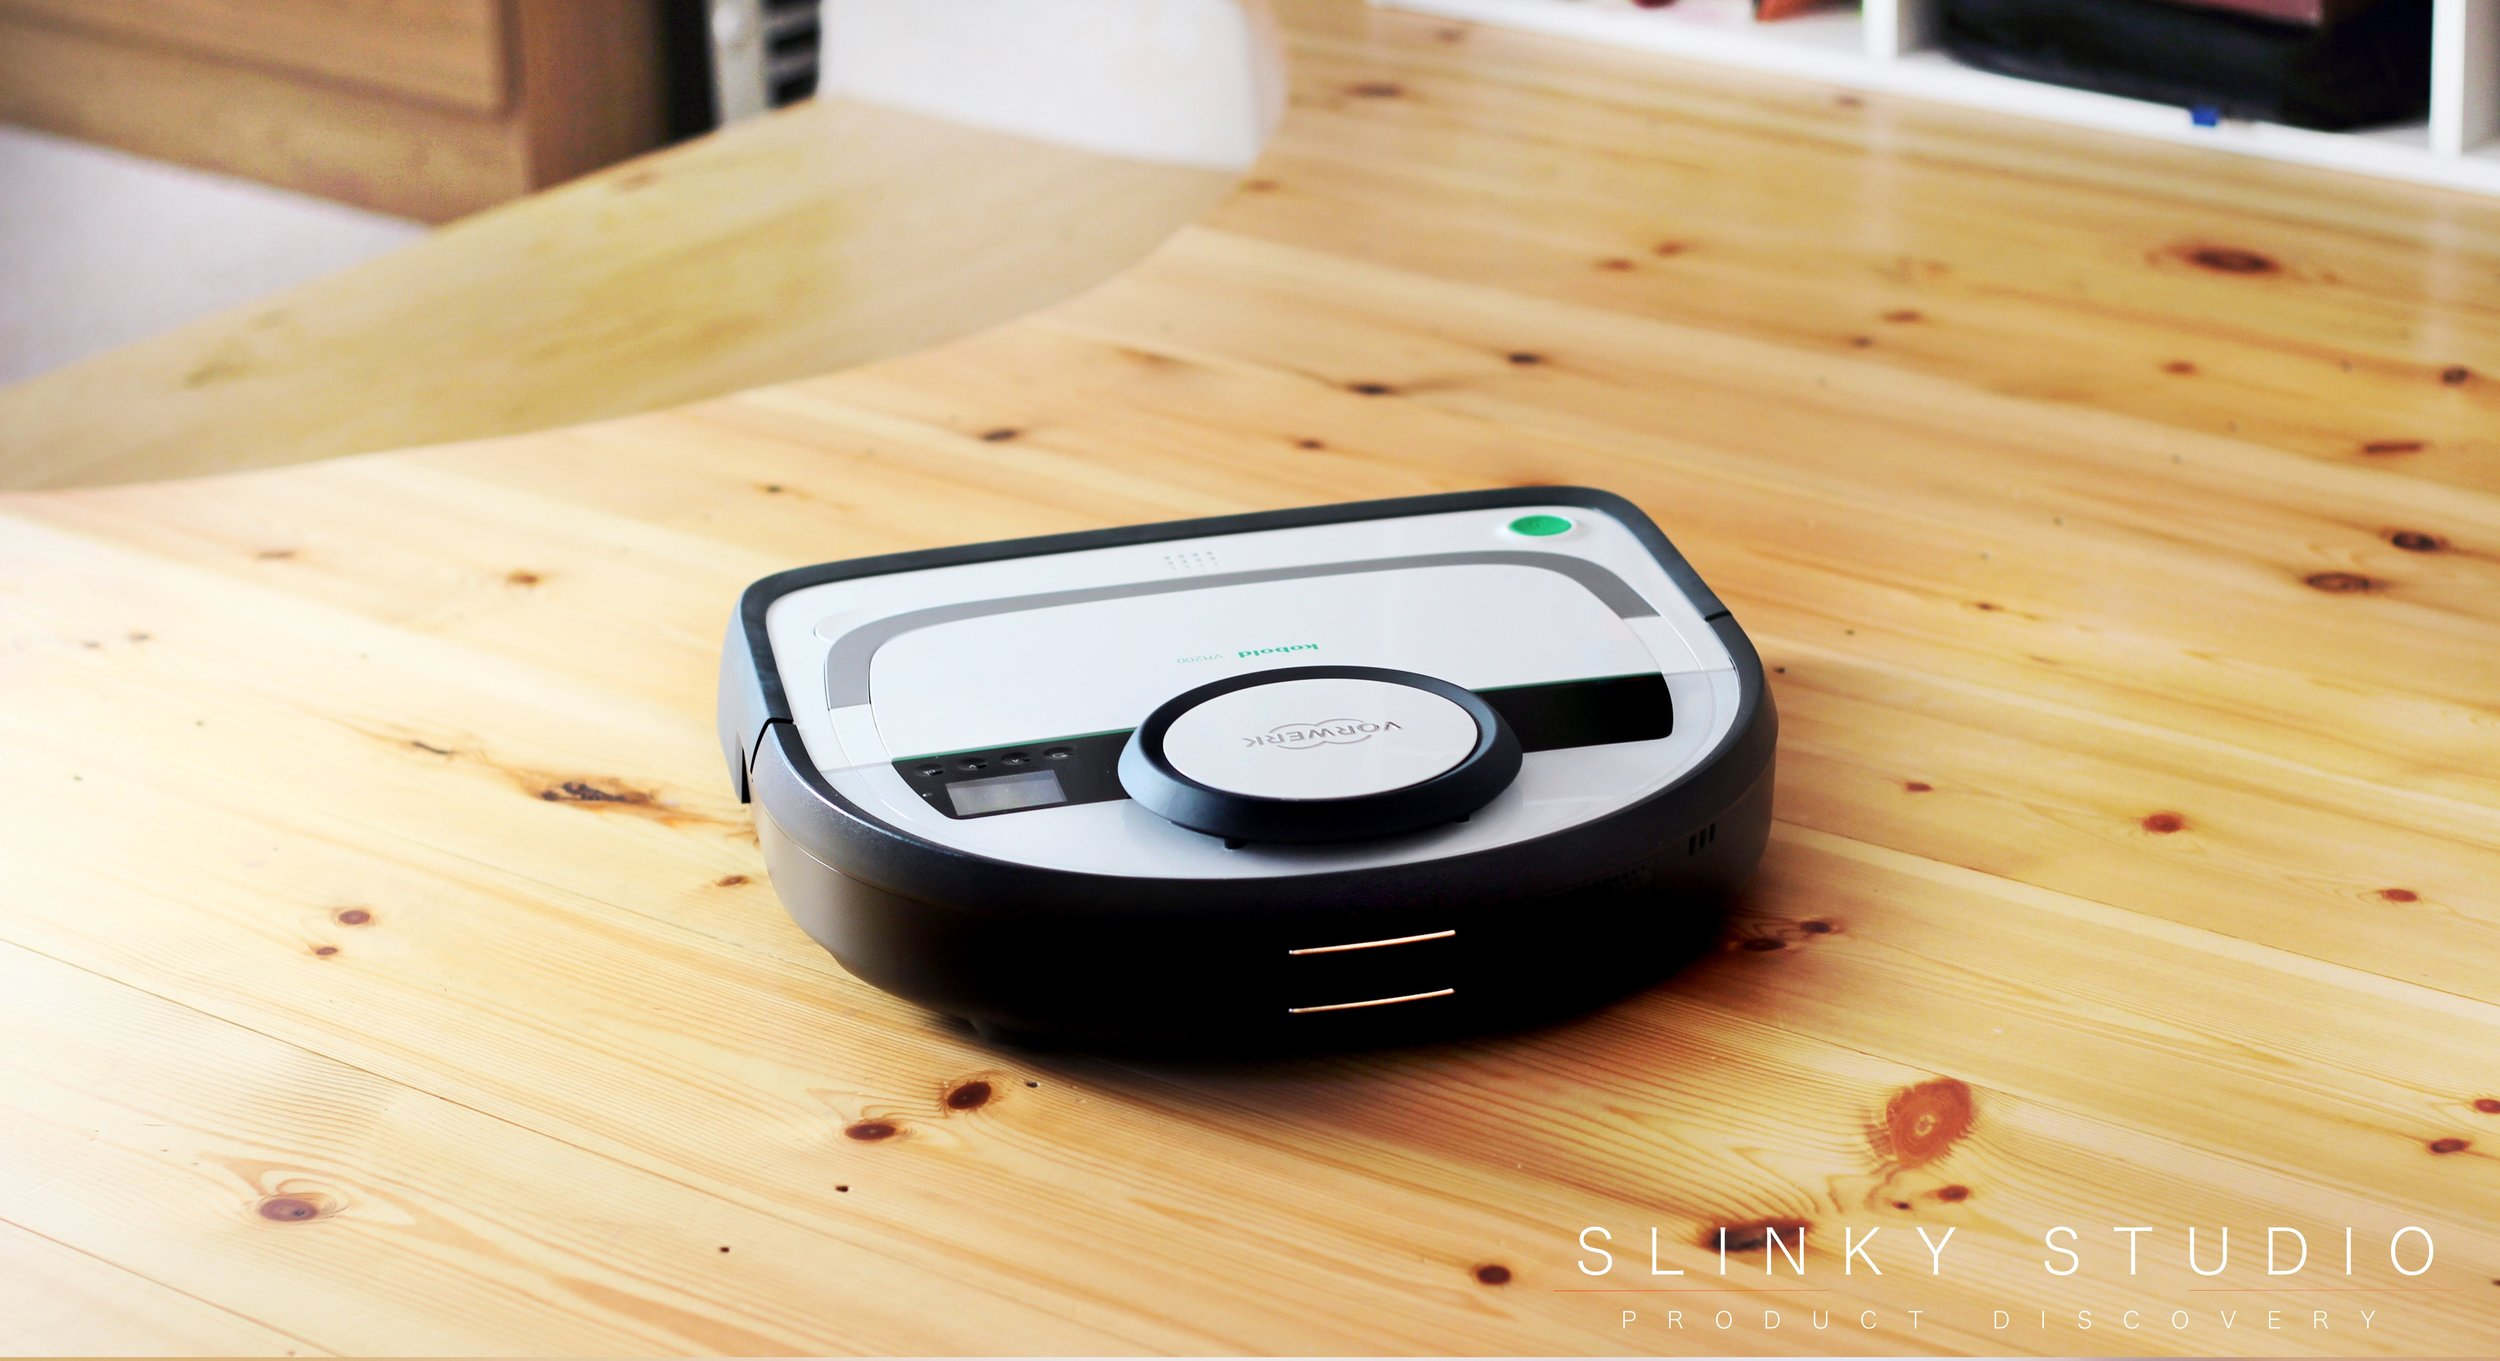 Vorwerk Kobold VR200 Robot Cleaner Review  Slinky Studio